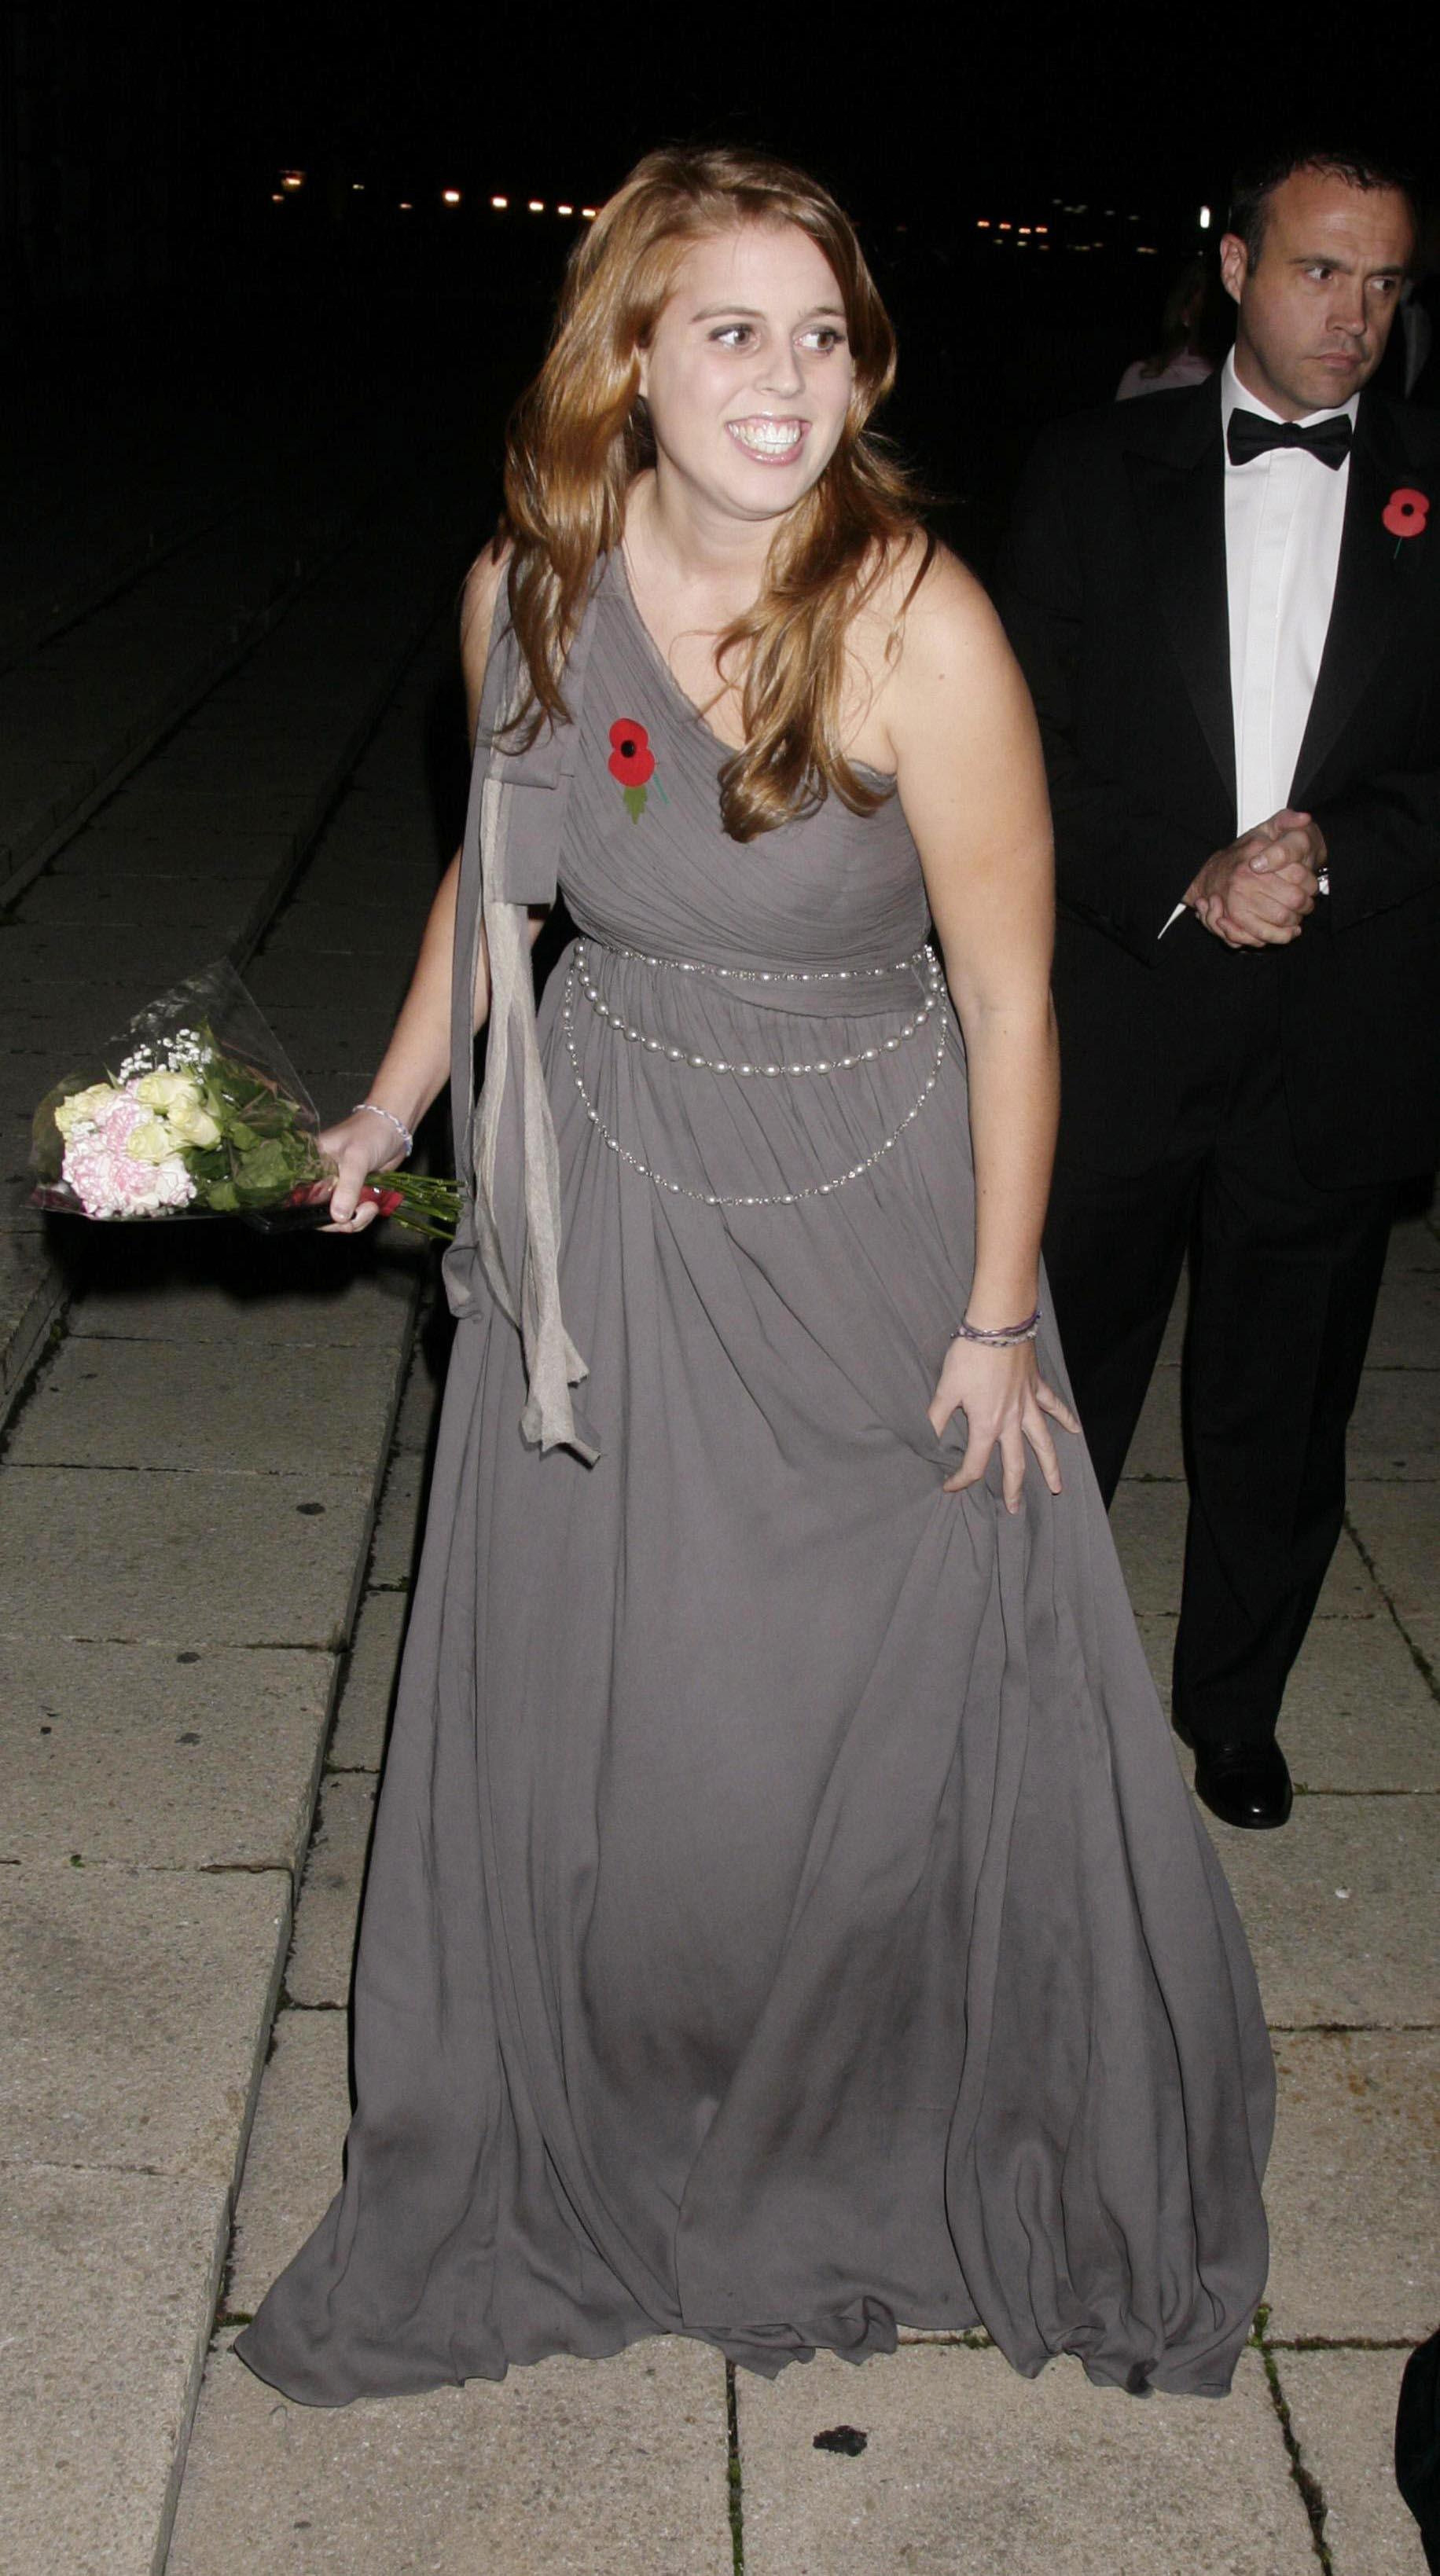 Princess Beatrice arrives for the Children in Crisis fundraising dinner in 2008